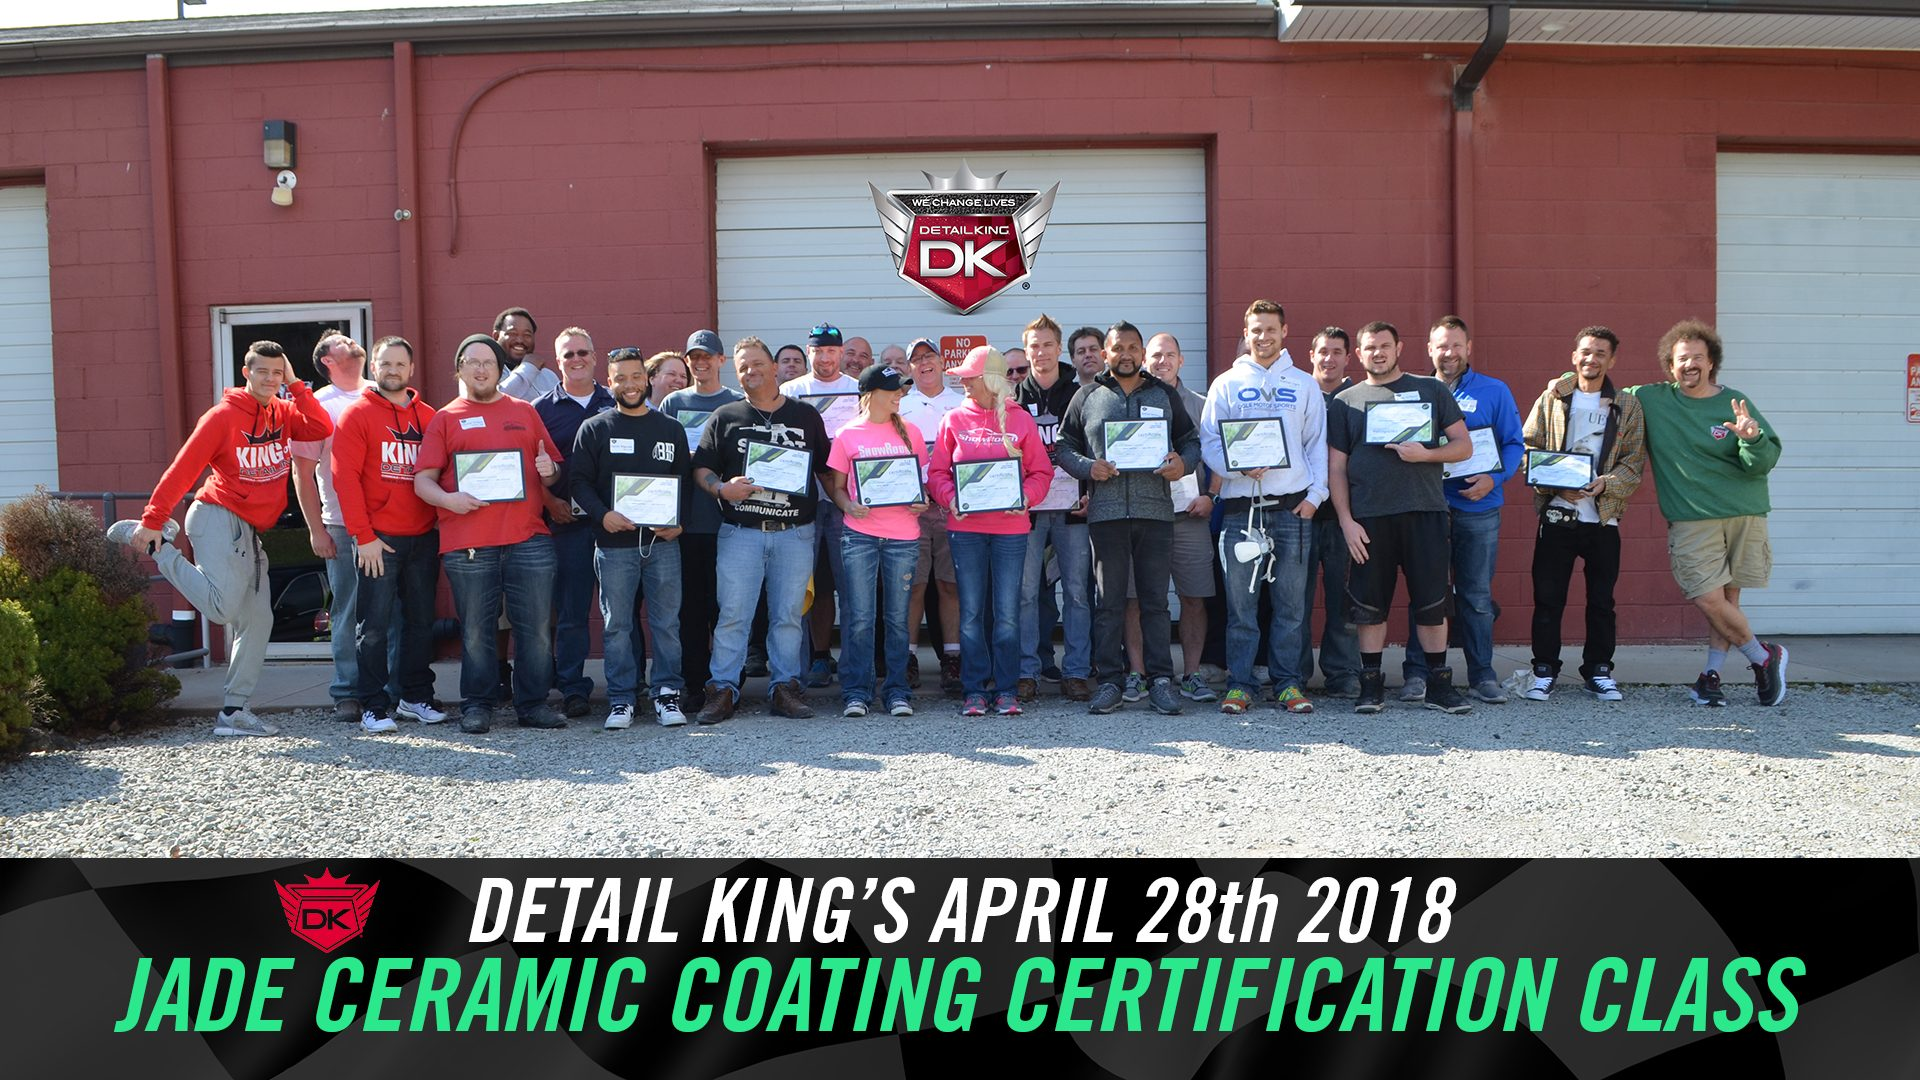 Detail King's FIRST Jade Ceramic Coating Certification Class! – April 28th 2018